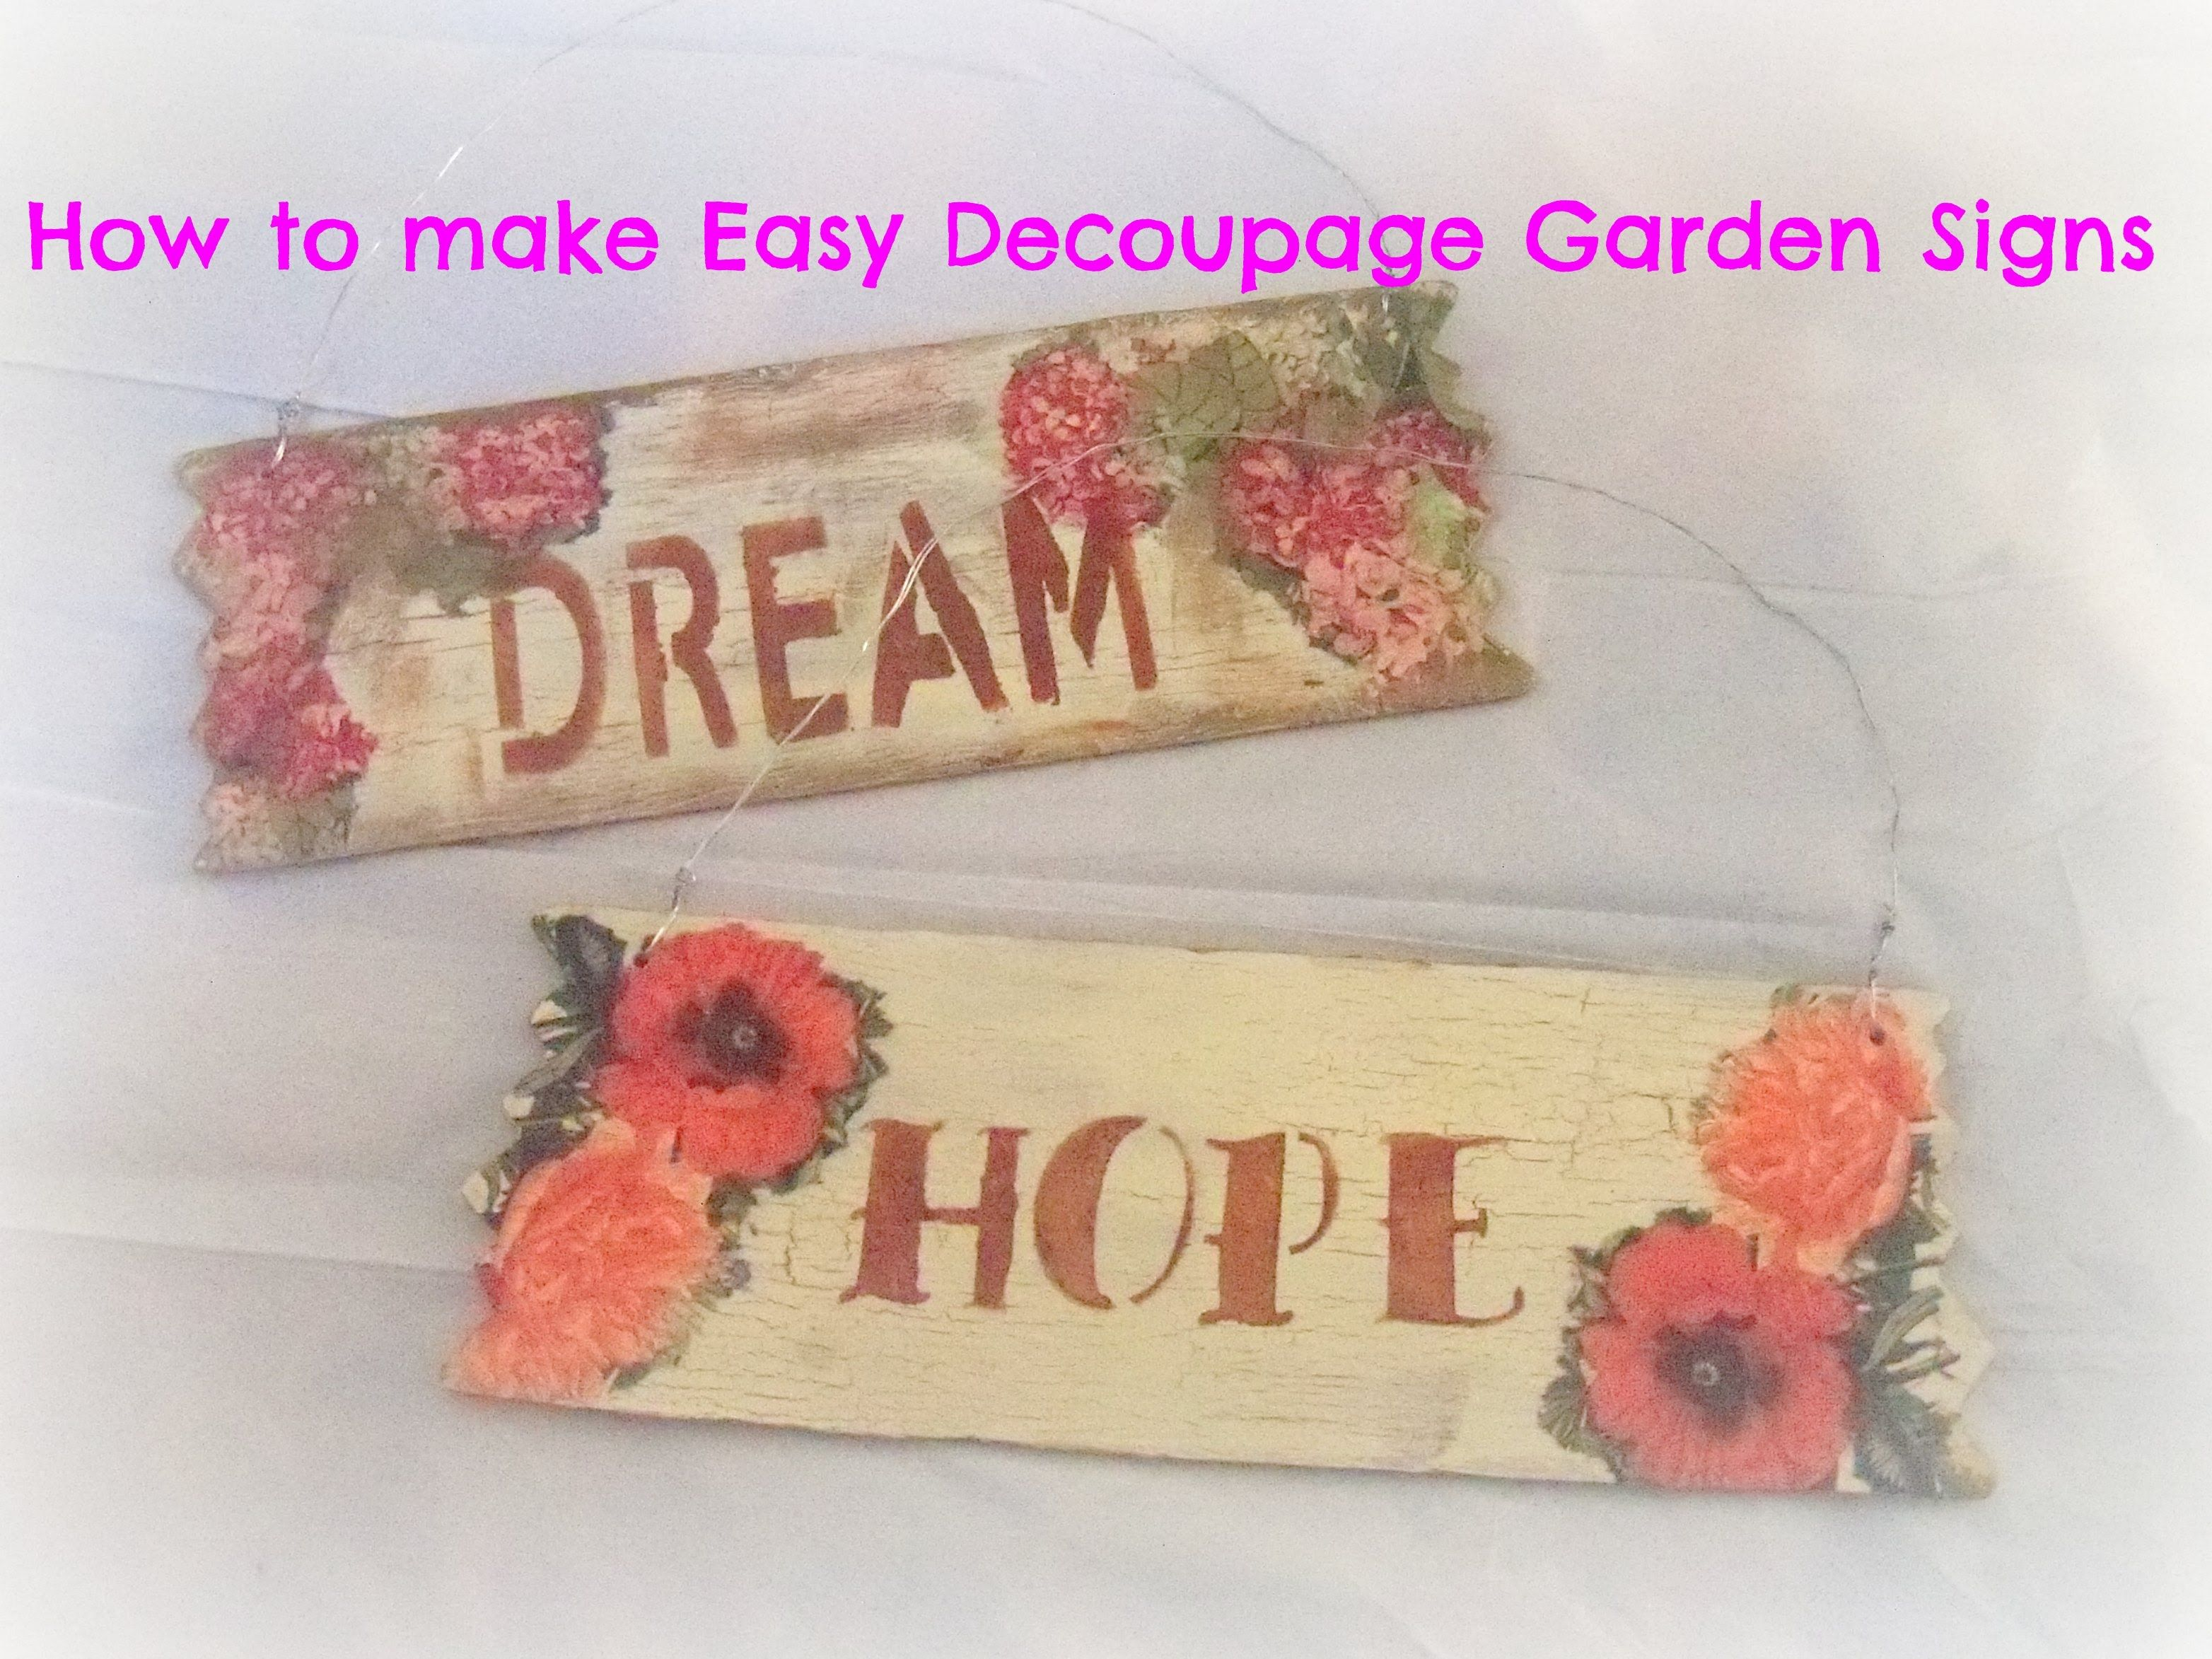 how to make decoupage wood garden signs/ Tutorial/How to